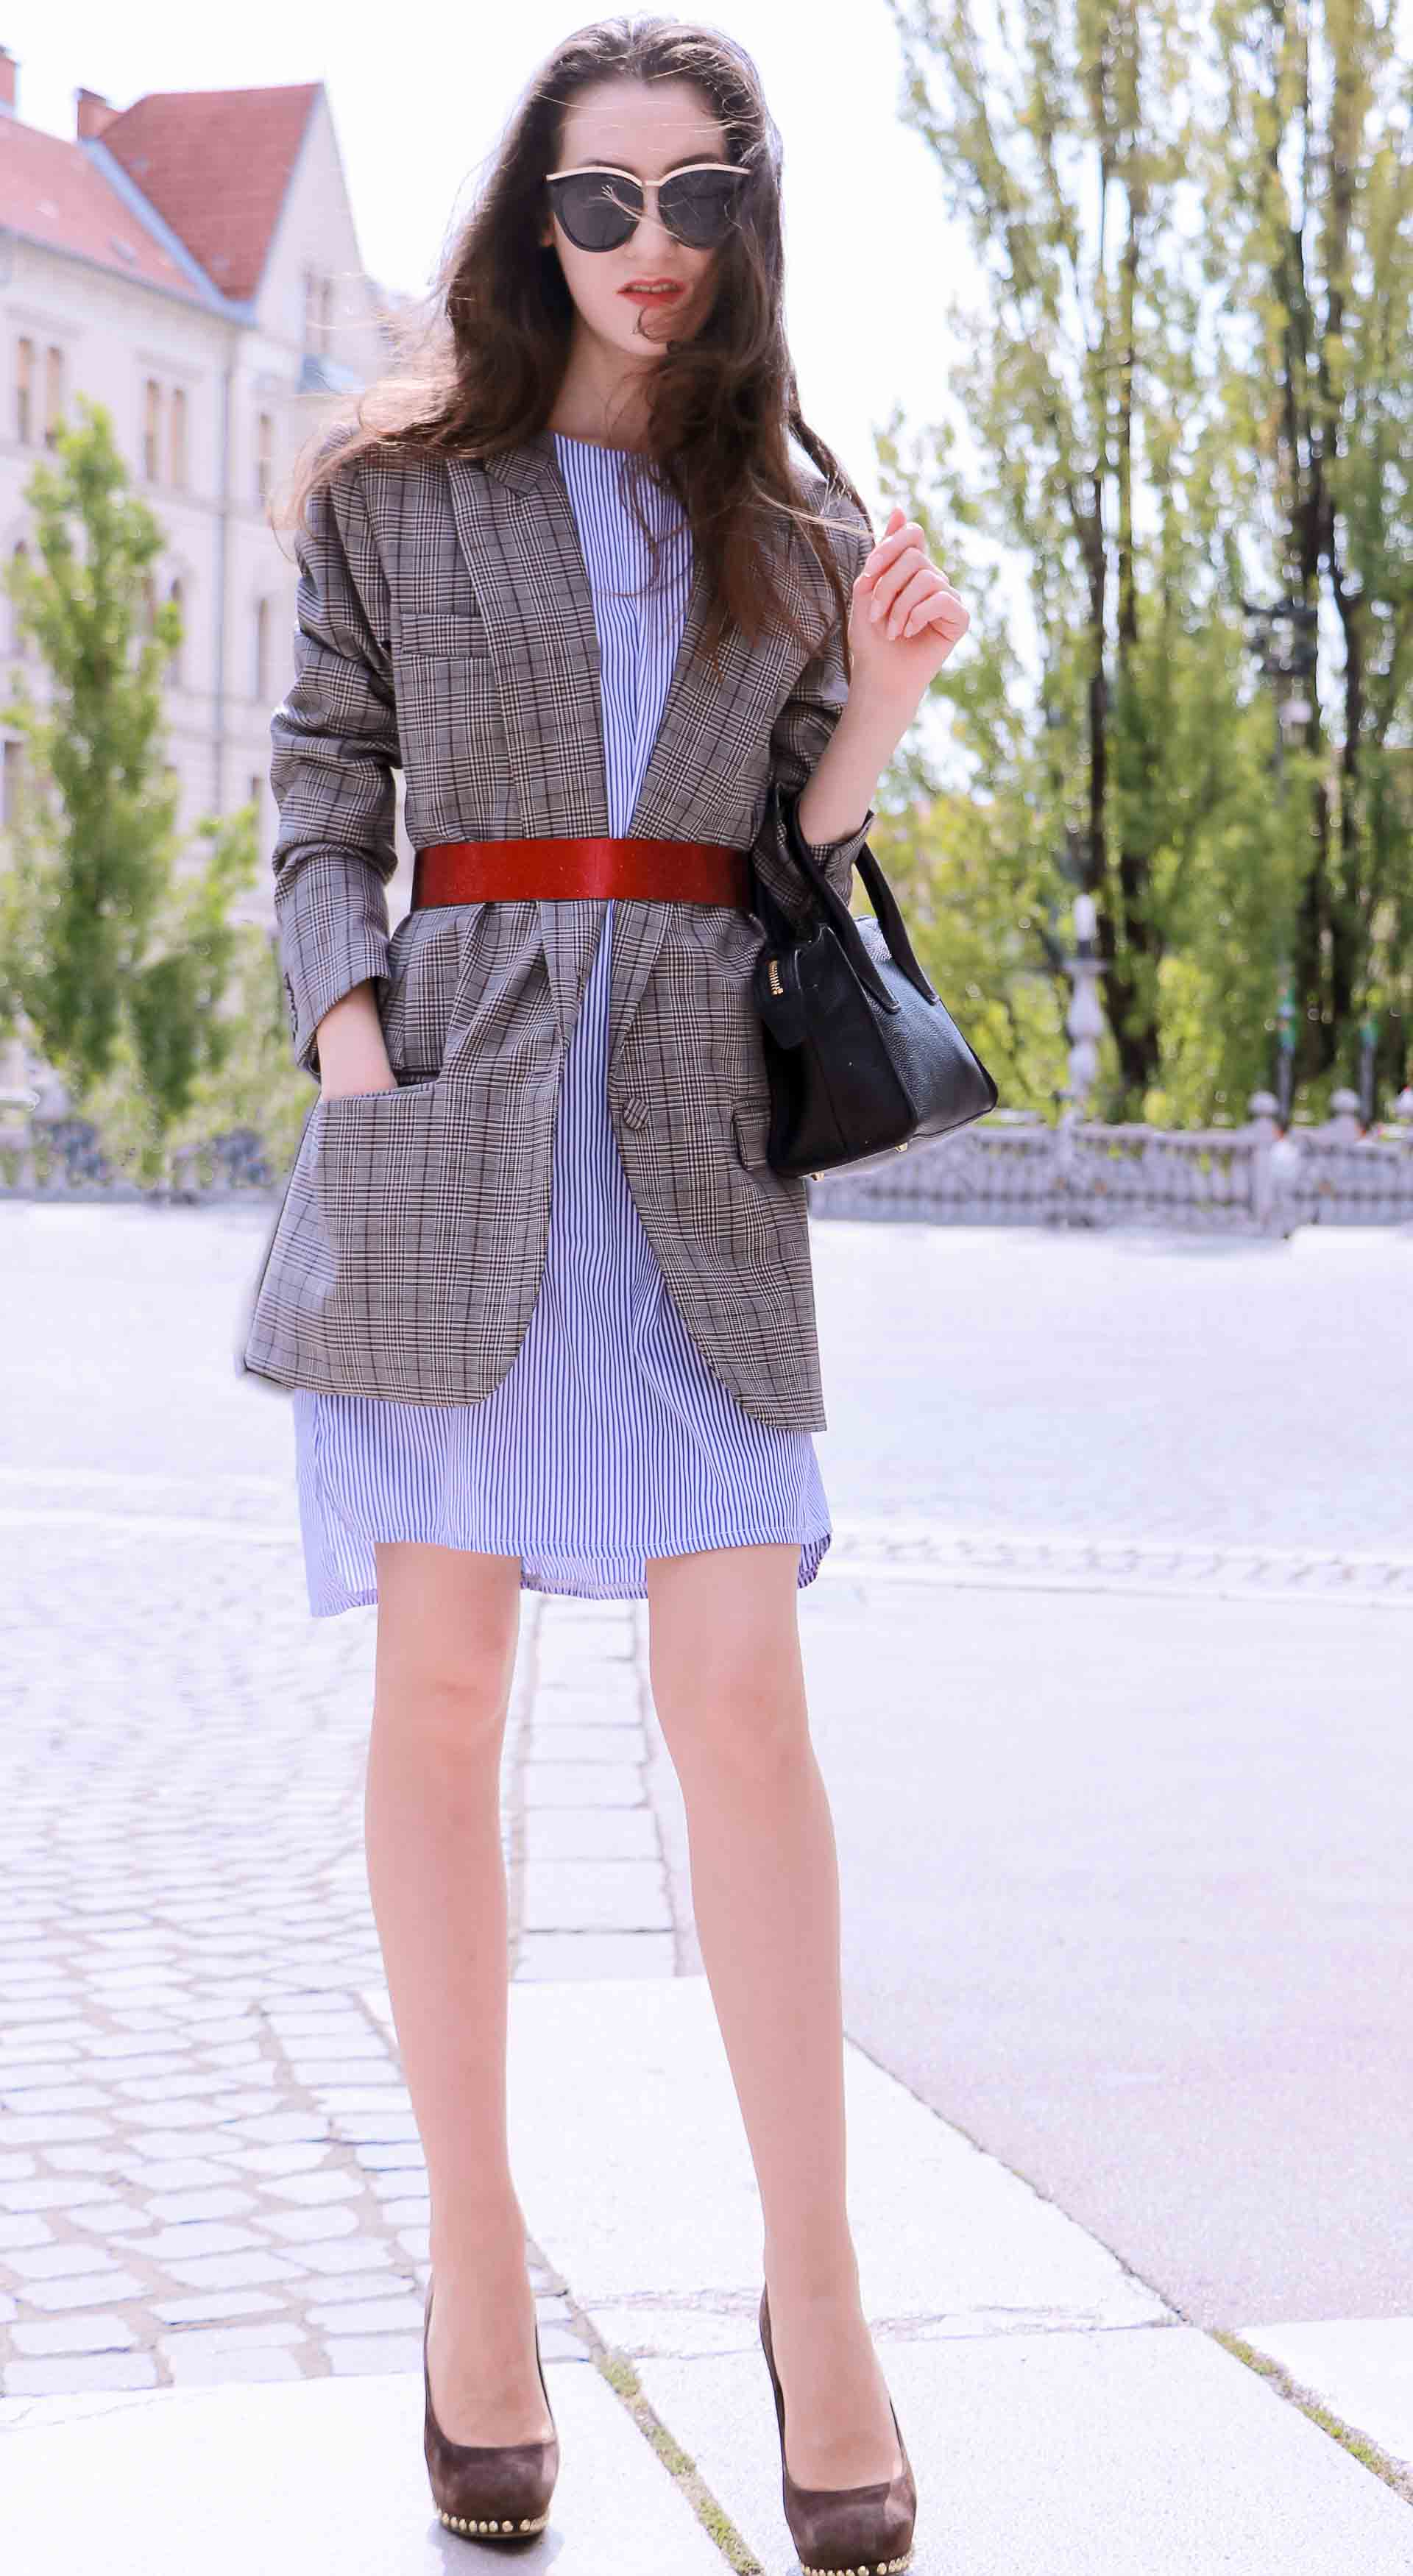 Veronika Lipar Fashion Blogger of Brunette from Wall Street wearing Erika Cavallini plaid blazer, blue striped shirtdress, red belt, brown court shoes, black top handle bag, Le Specs black sunglasses in spring